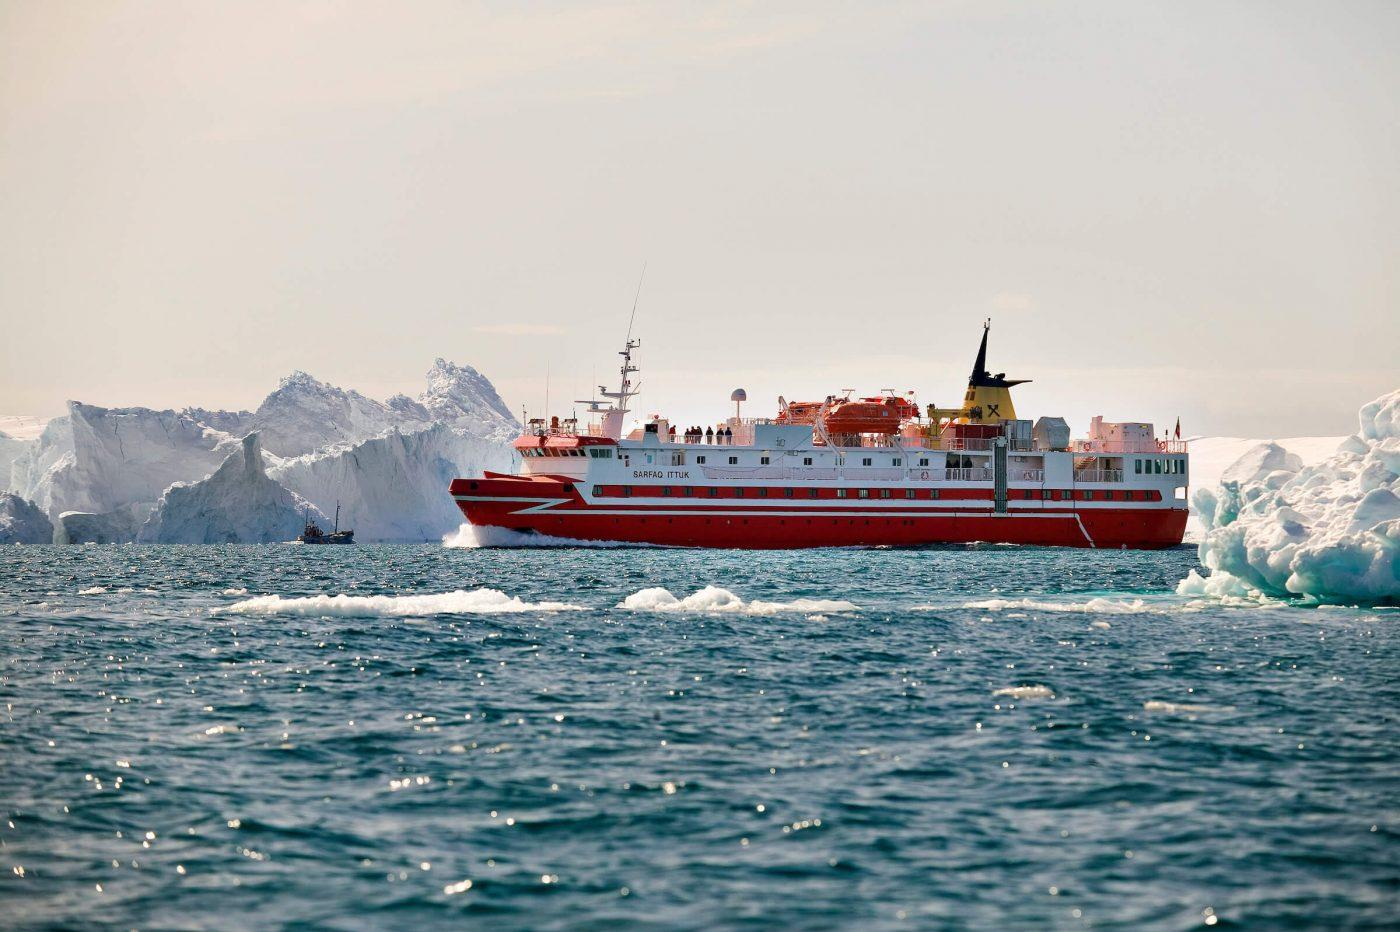 Fishing trawler and coastal ferry Sarfaq Ittuk among icebergs in Ilulissat Icefjord in Greenland